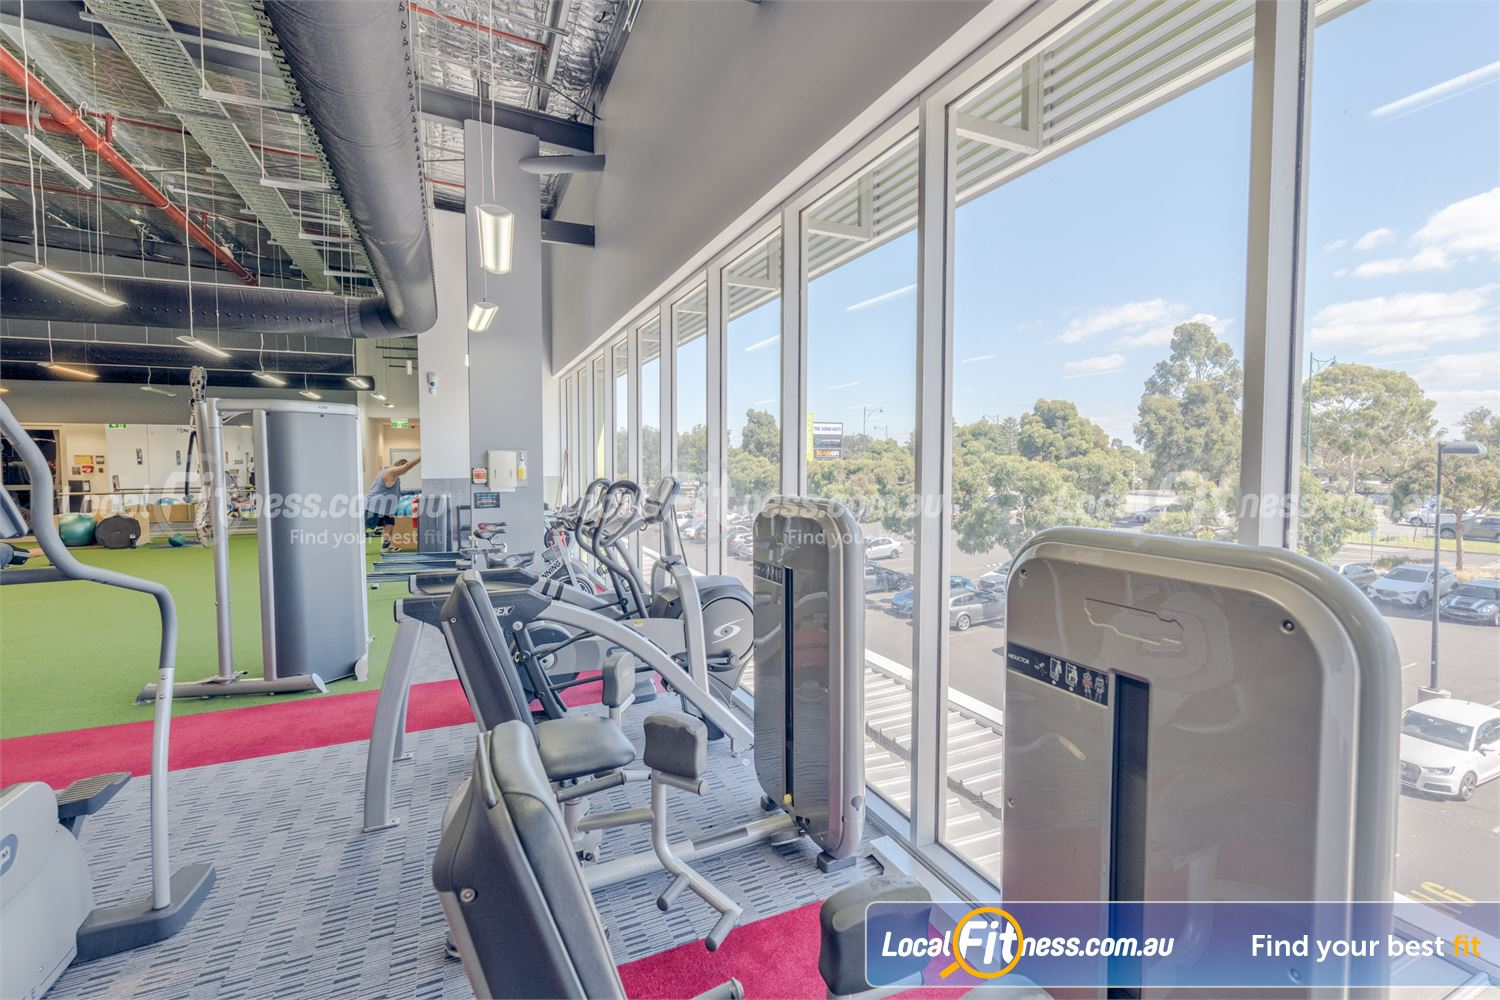 Element Fitness Health Club Near Vermont South Our Nunawading gym utilises state of the art Technogym strength equipment.